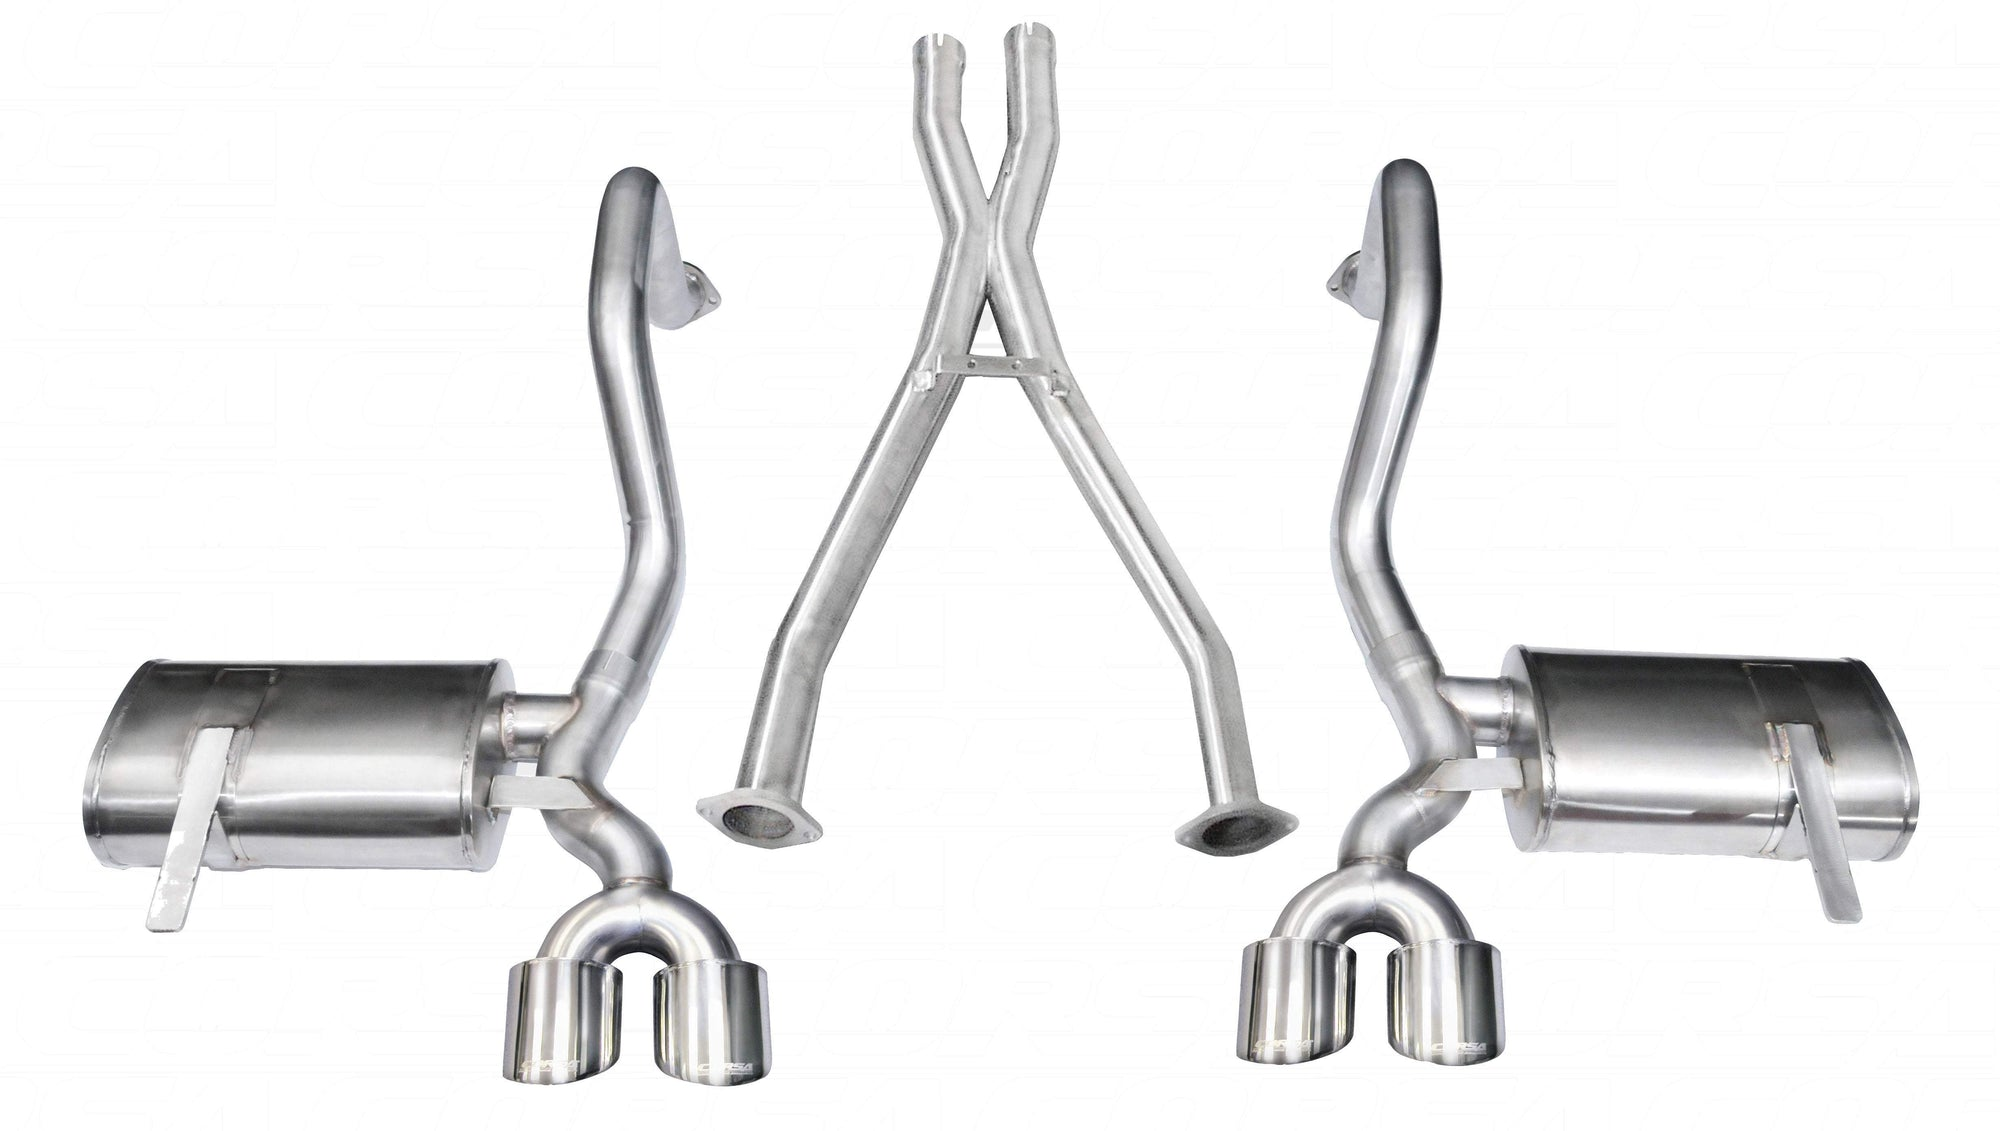 "CORSA PERFORMANCE Cat-Back Exhaust Polished / Xtreme / Dual Rear - Twin 4in 1997-2004 Chevrolet Corvette C5/ C5 Z06 5.7L V8, 2.5"" Dual Rear Exit Cat back Exhaust System with Twin 4.0"" Tips (14962) Xtreme Sound Level"